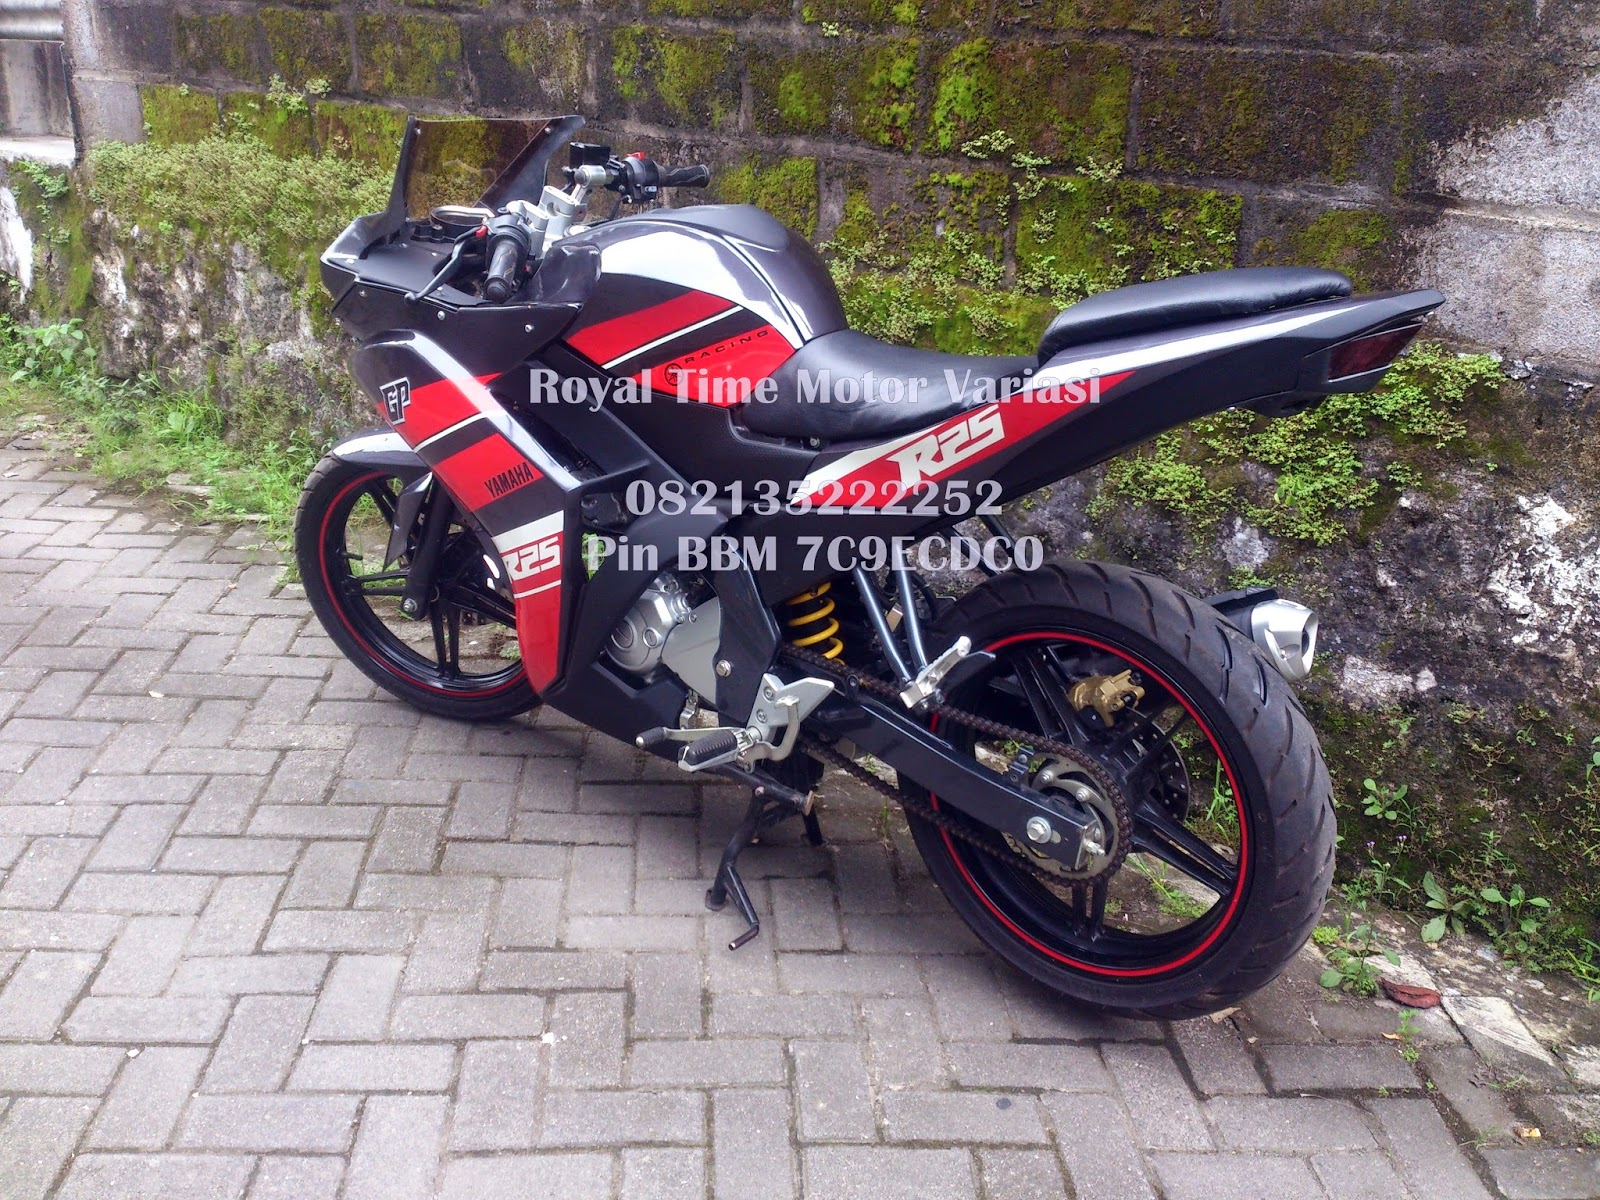 Full Fairing R25 Gp Edition